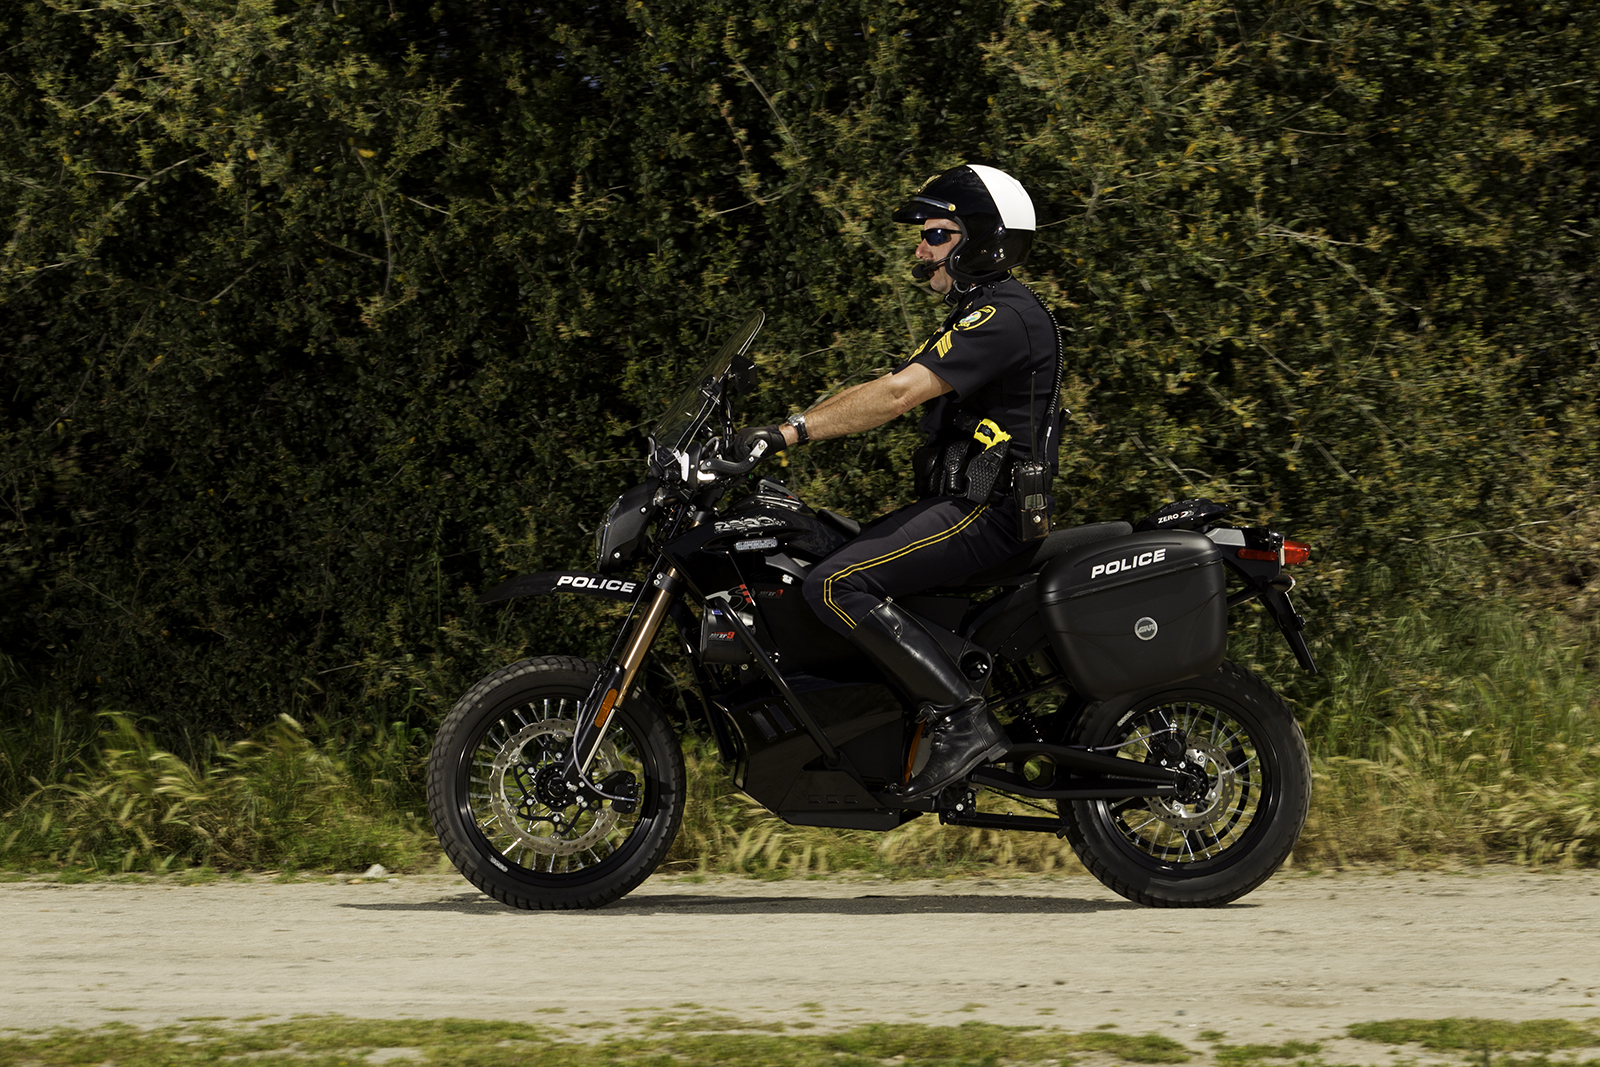 2012 Zero DS Police Motorcycles: Scotts Valley 5